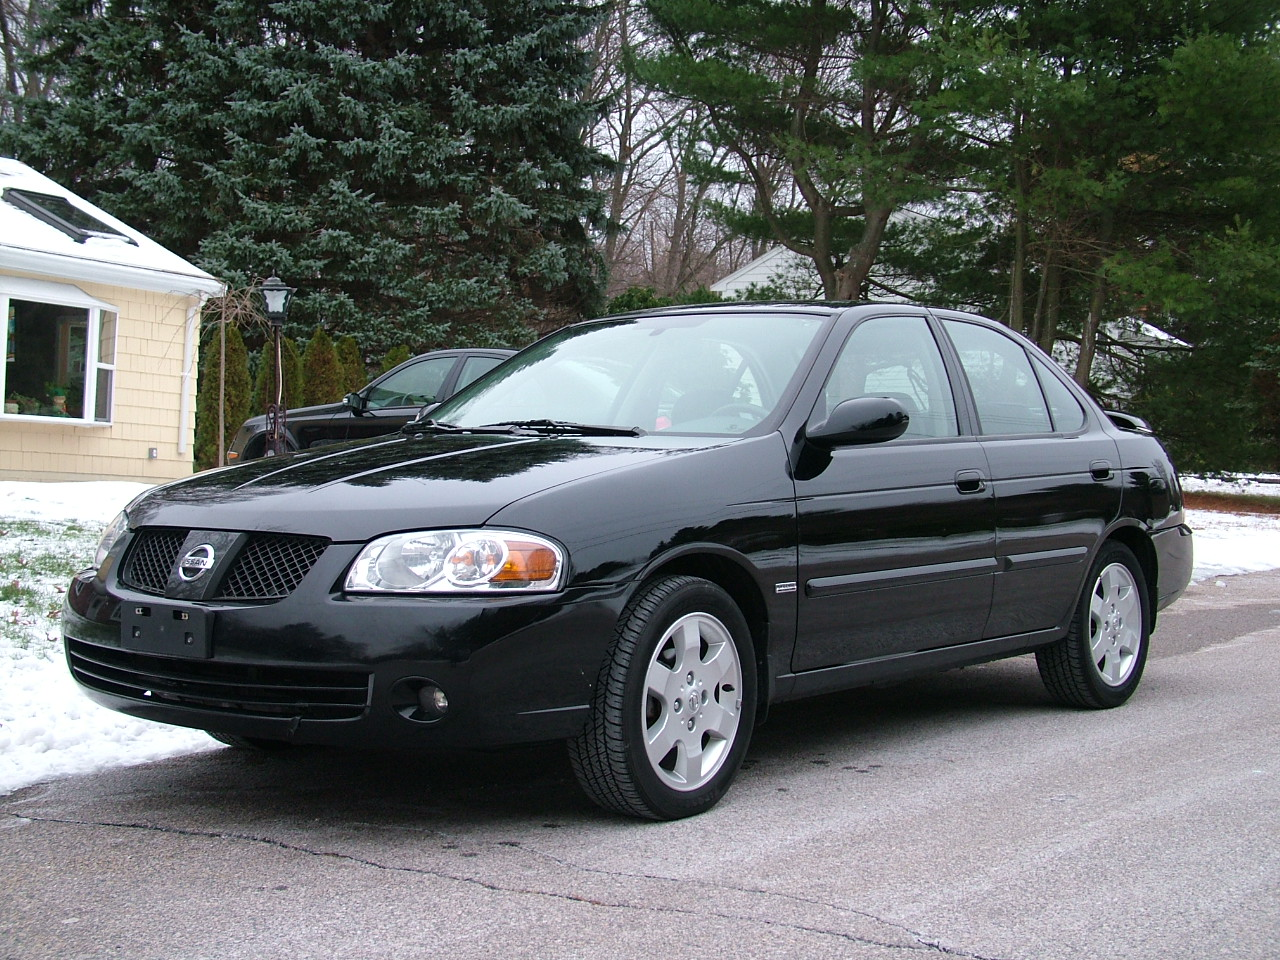 All Types 2004 sentra : Nissan Sentra 2.0 2004 Technical specifications | Interior and ...